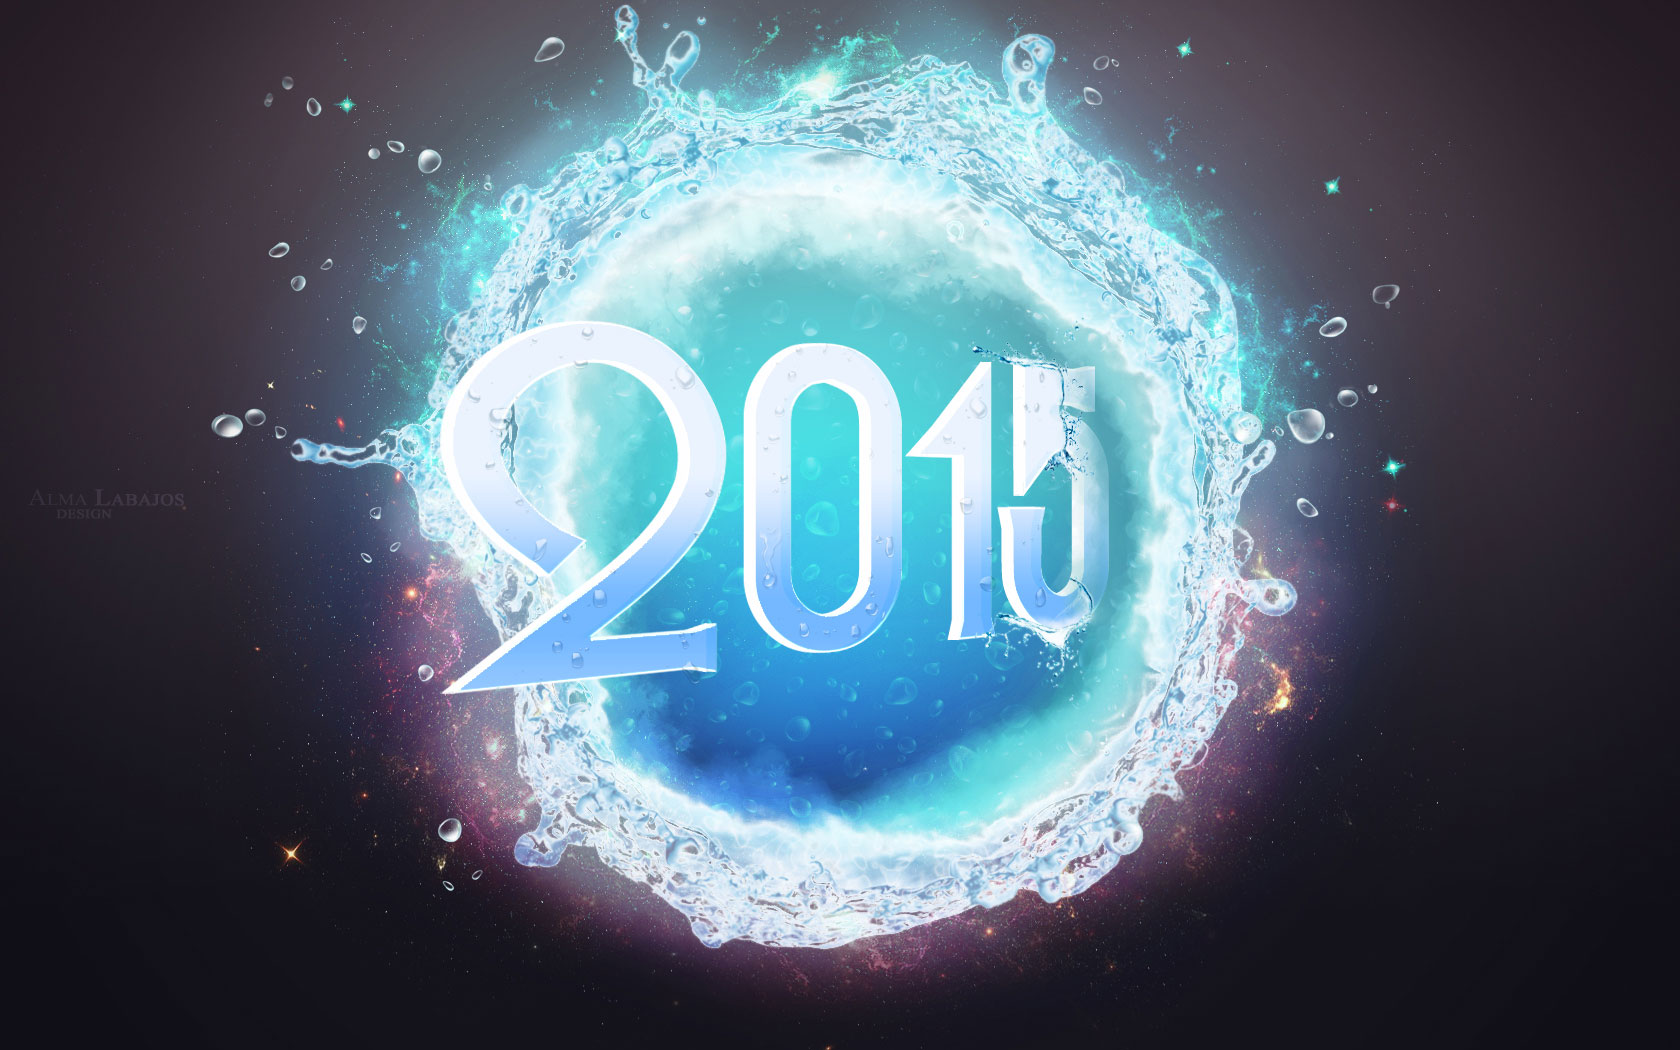 happy new year 2015 wallpaper credit happy_new_year_2015_wallpaper